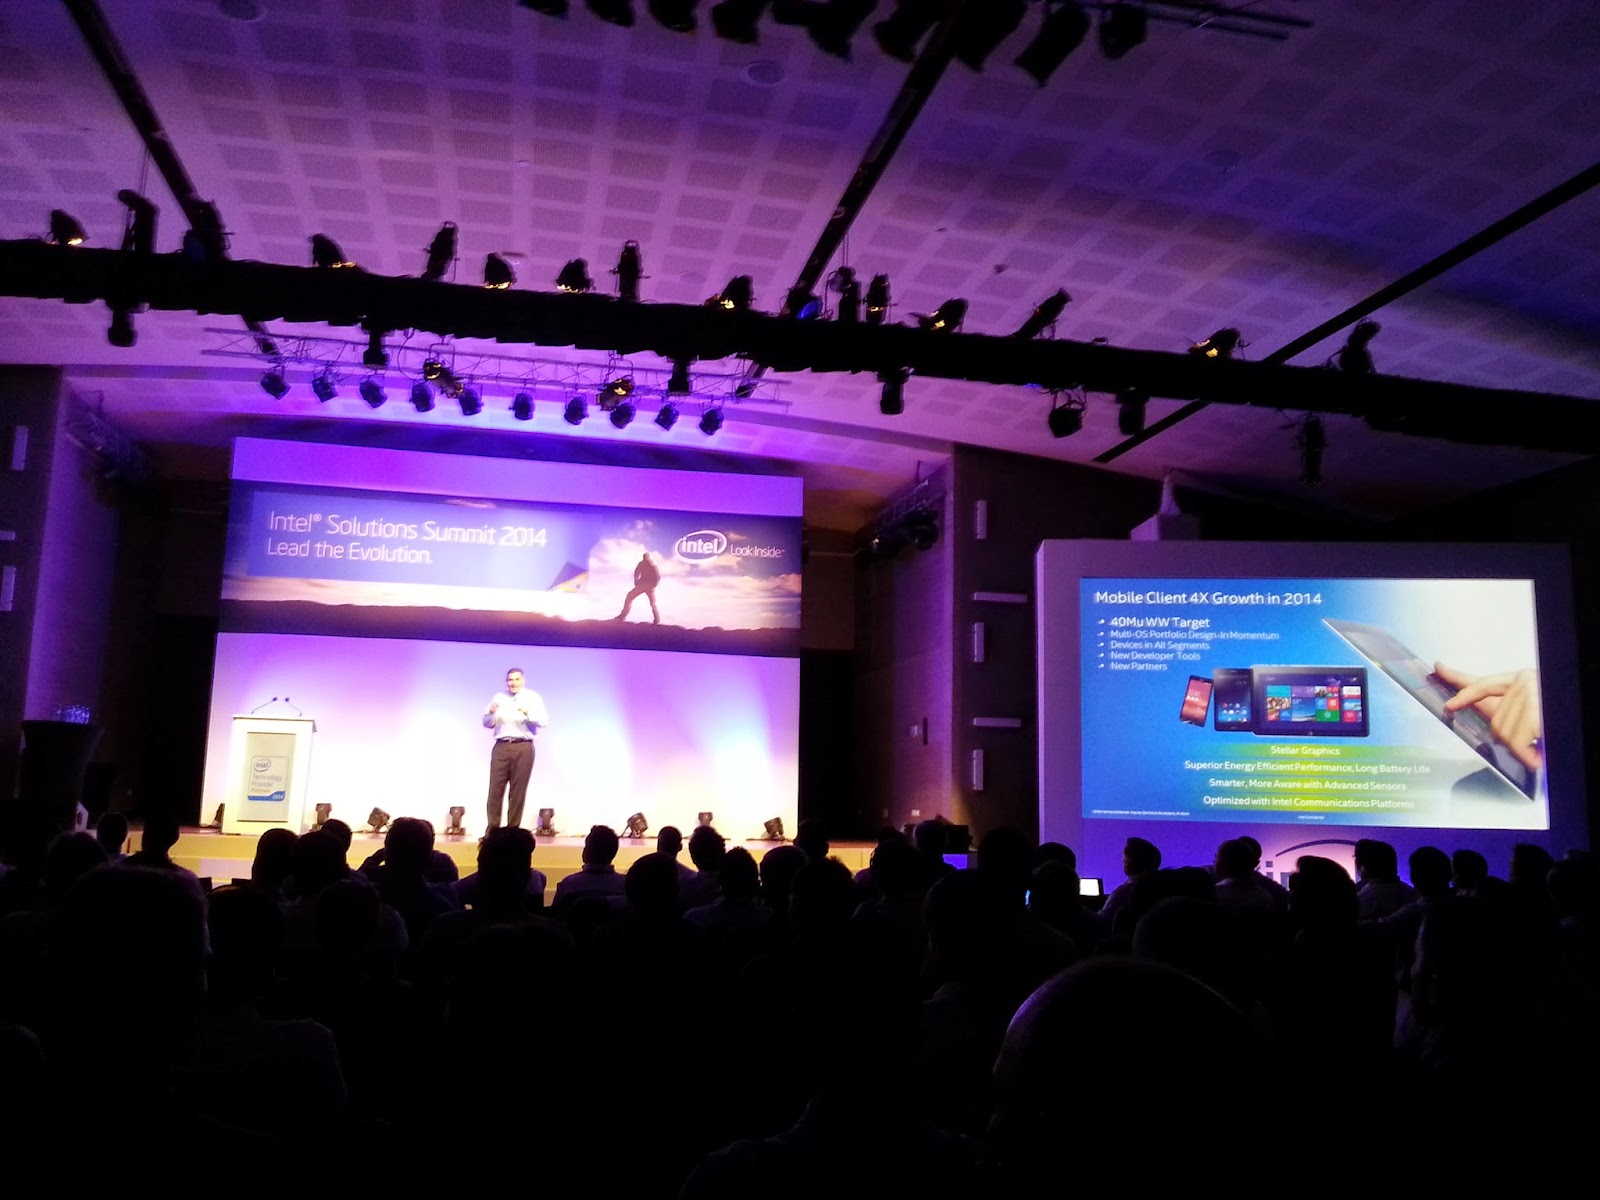 Intel® Solutions Summit 2014